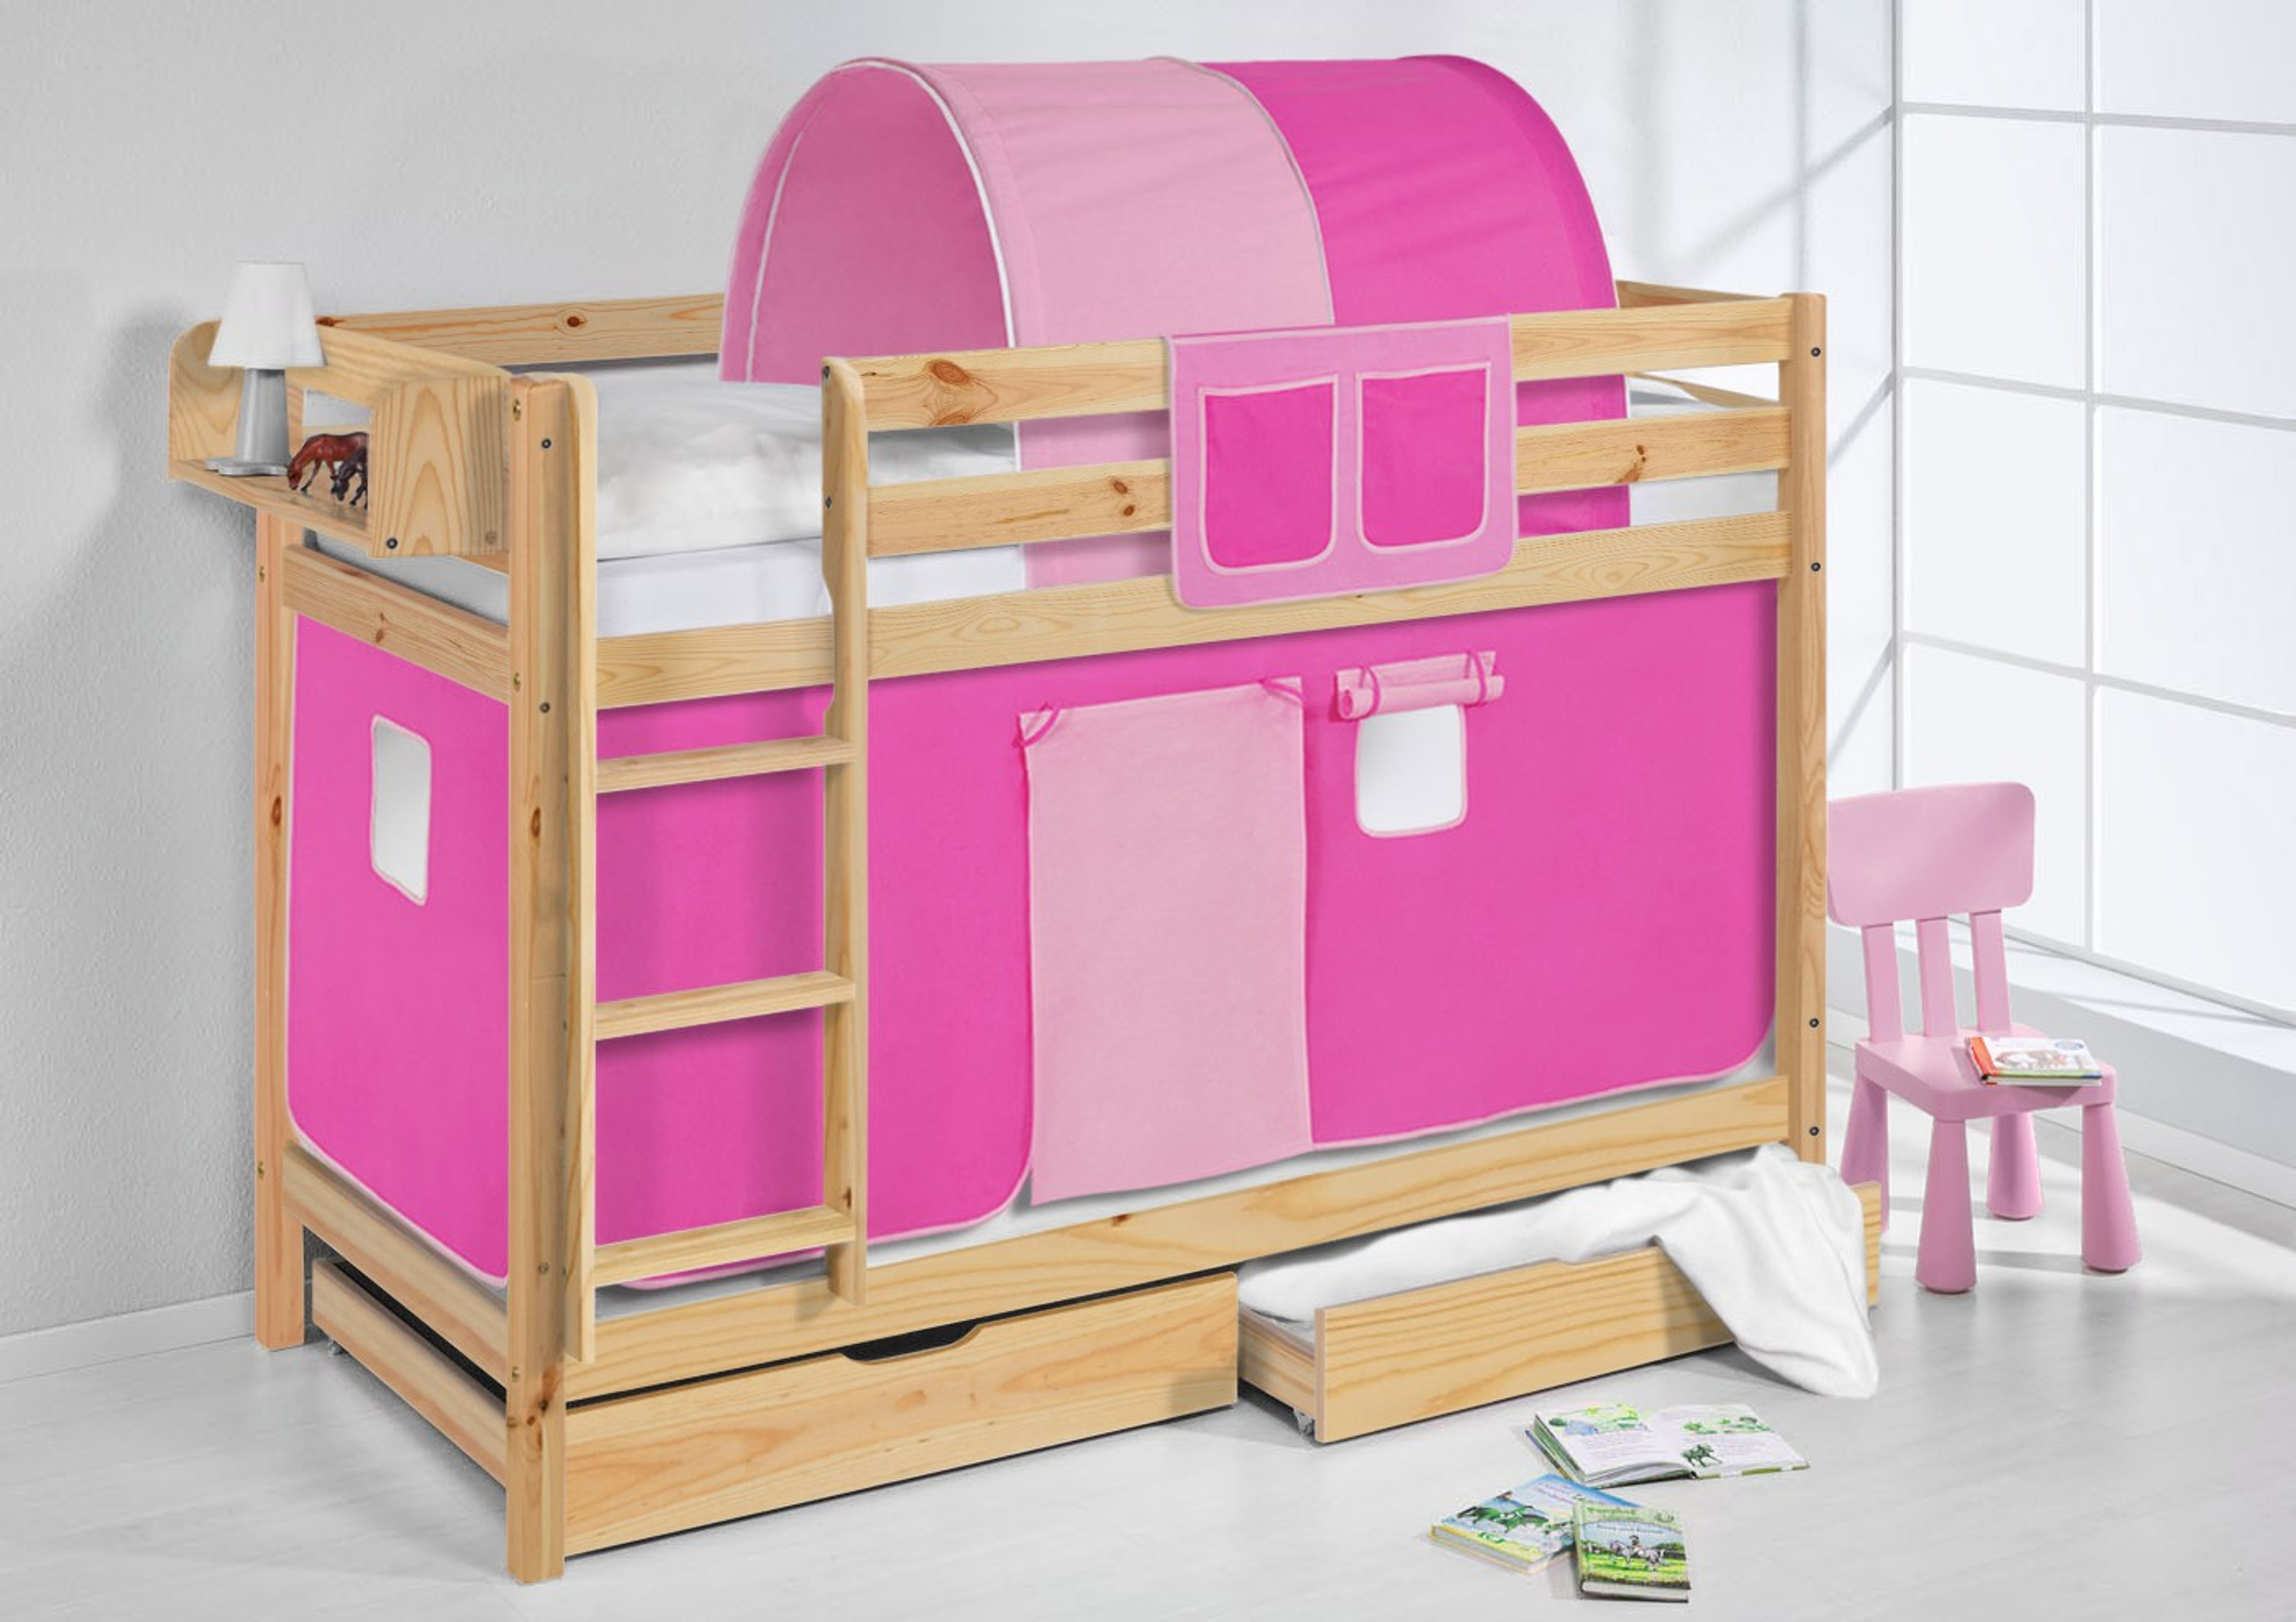 etagenbett rosa natur mit vorhang und lattenroste jelle m bel baby kinderzimmer. Black Bedroom Furniture Sets. Home Design Ideas